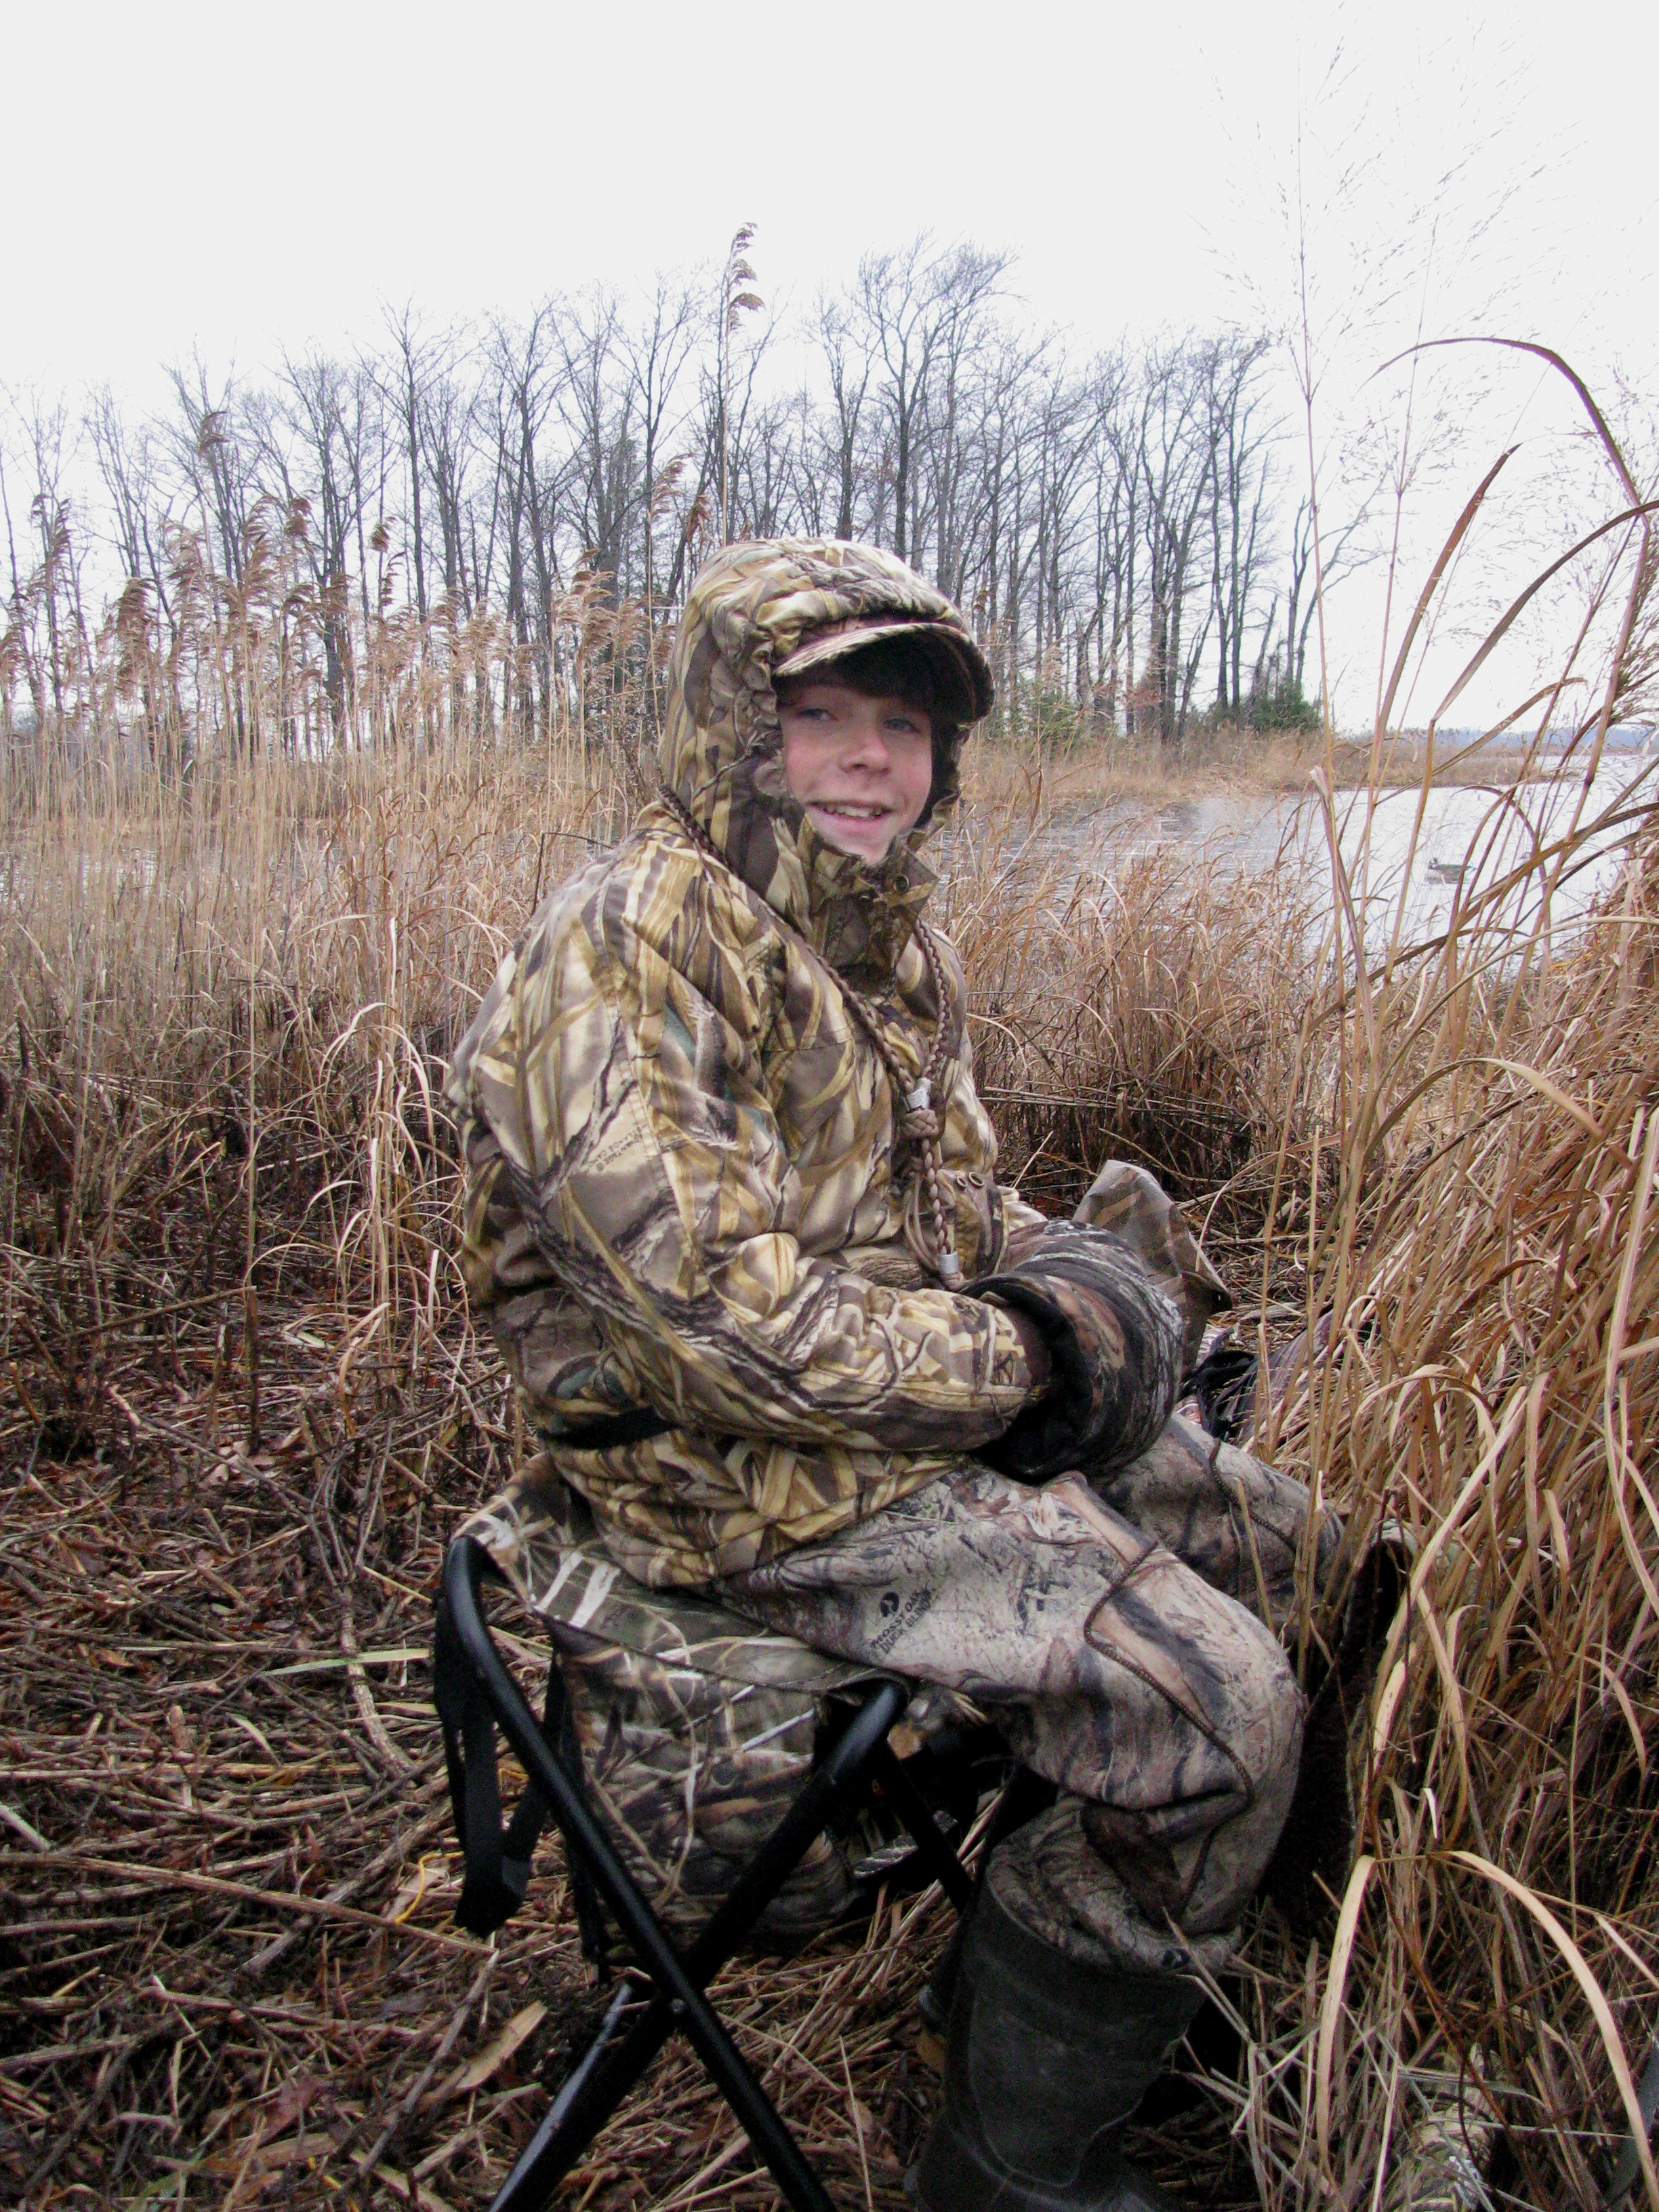 Hiding behind the blind in full camouflage, enjoying a morning of waterfowling